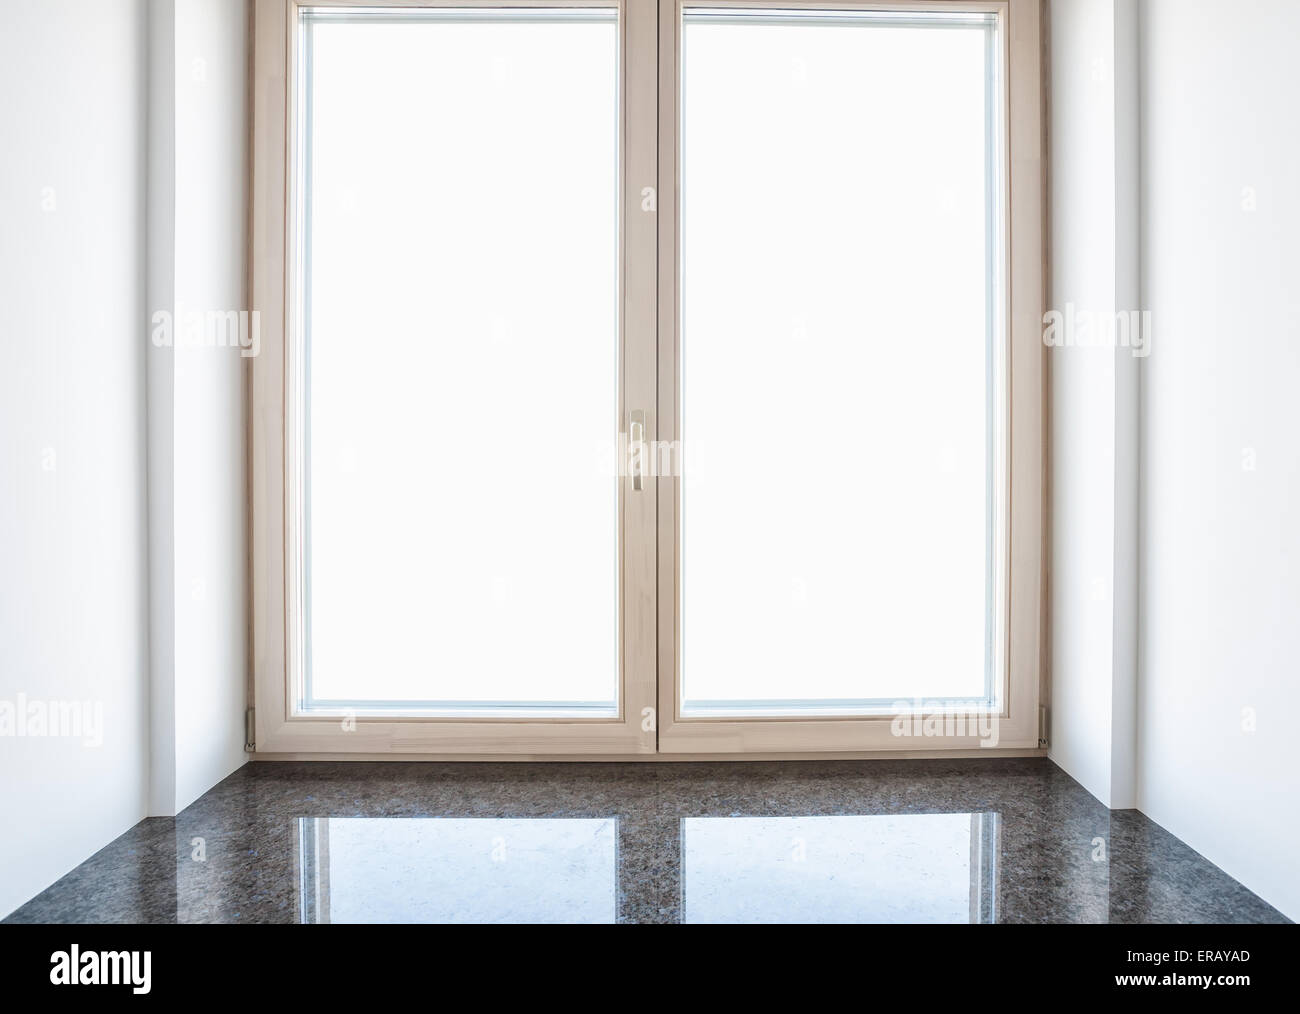 Modern residential window with marble windowsill for Residential window design